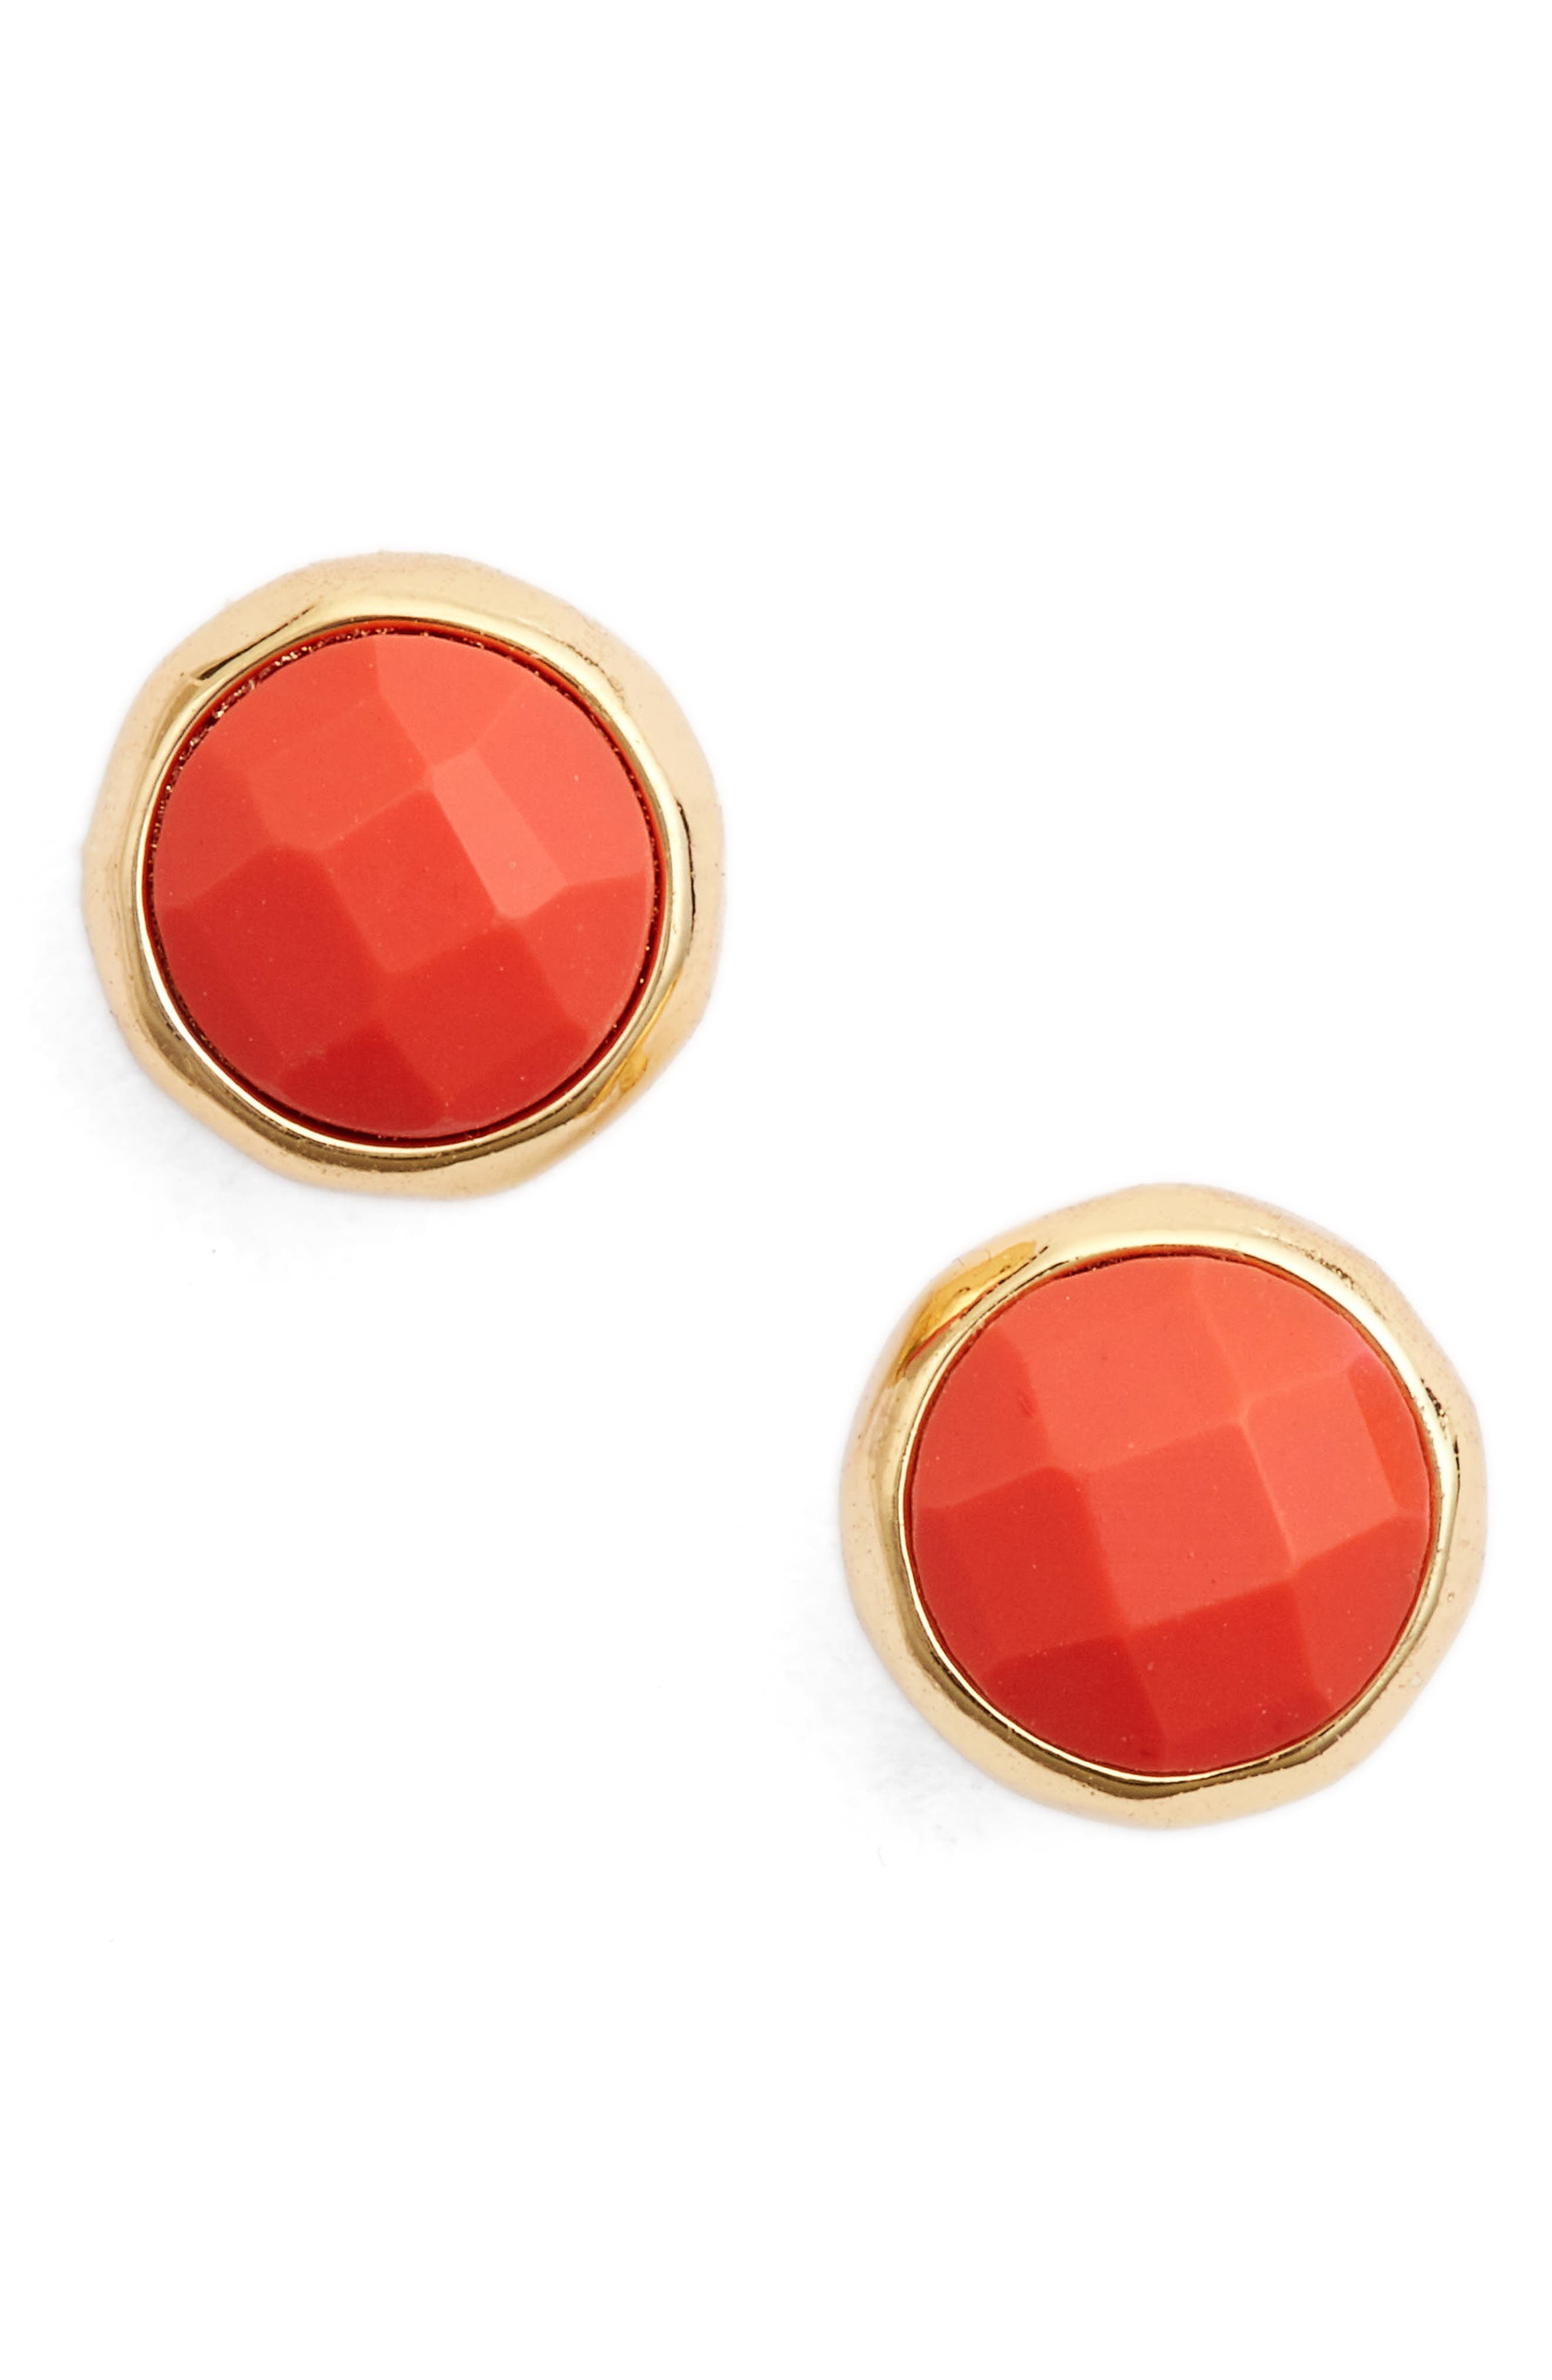 Harmony Stud Earrings,                         Main,                         color, Pink Coral/ Gold